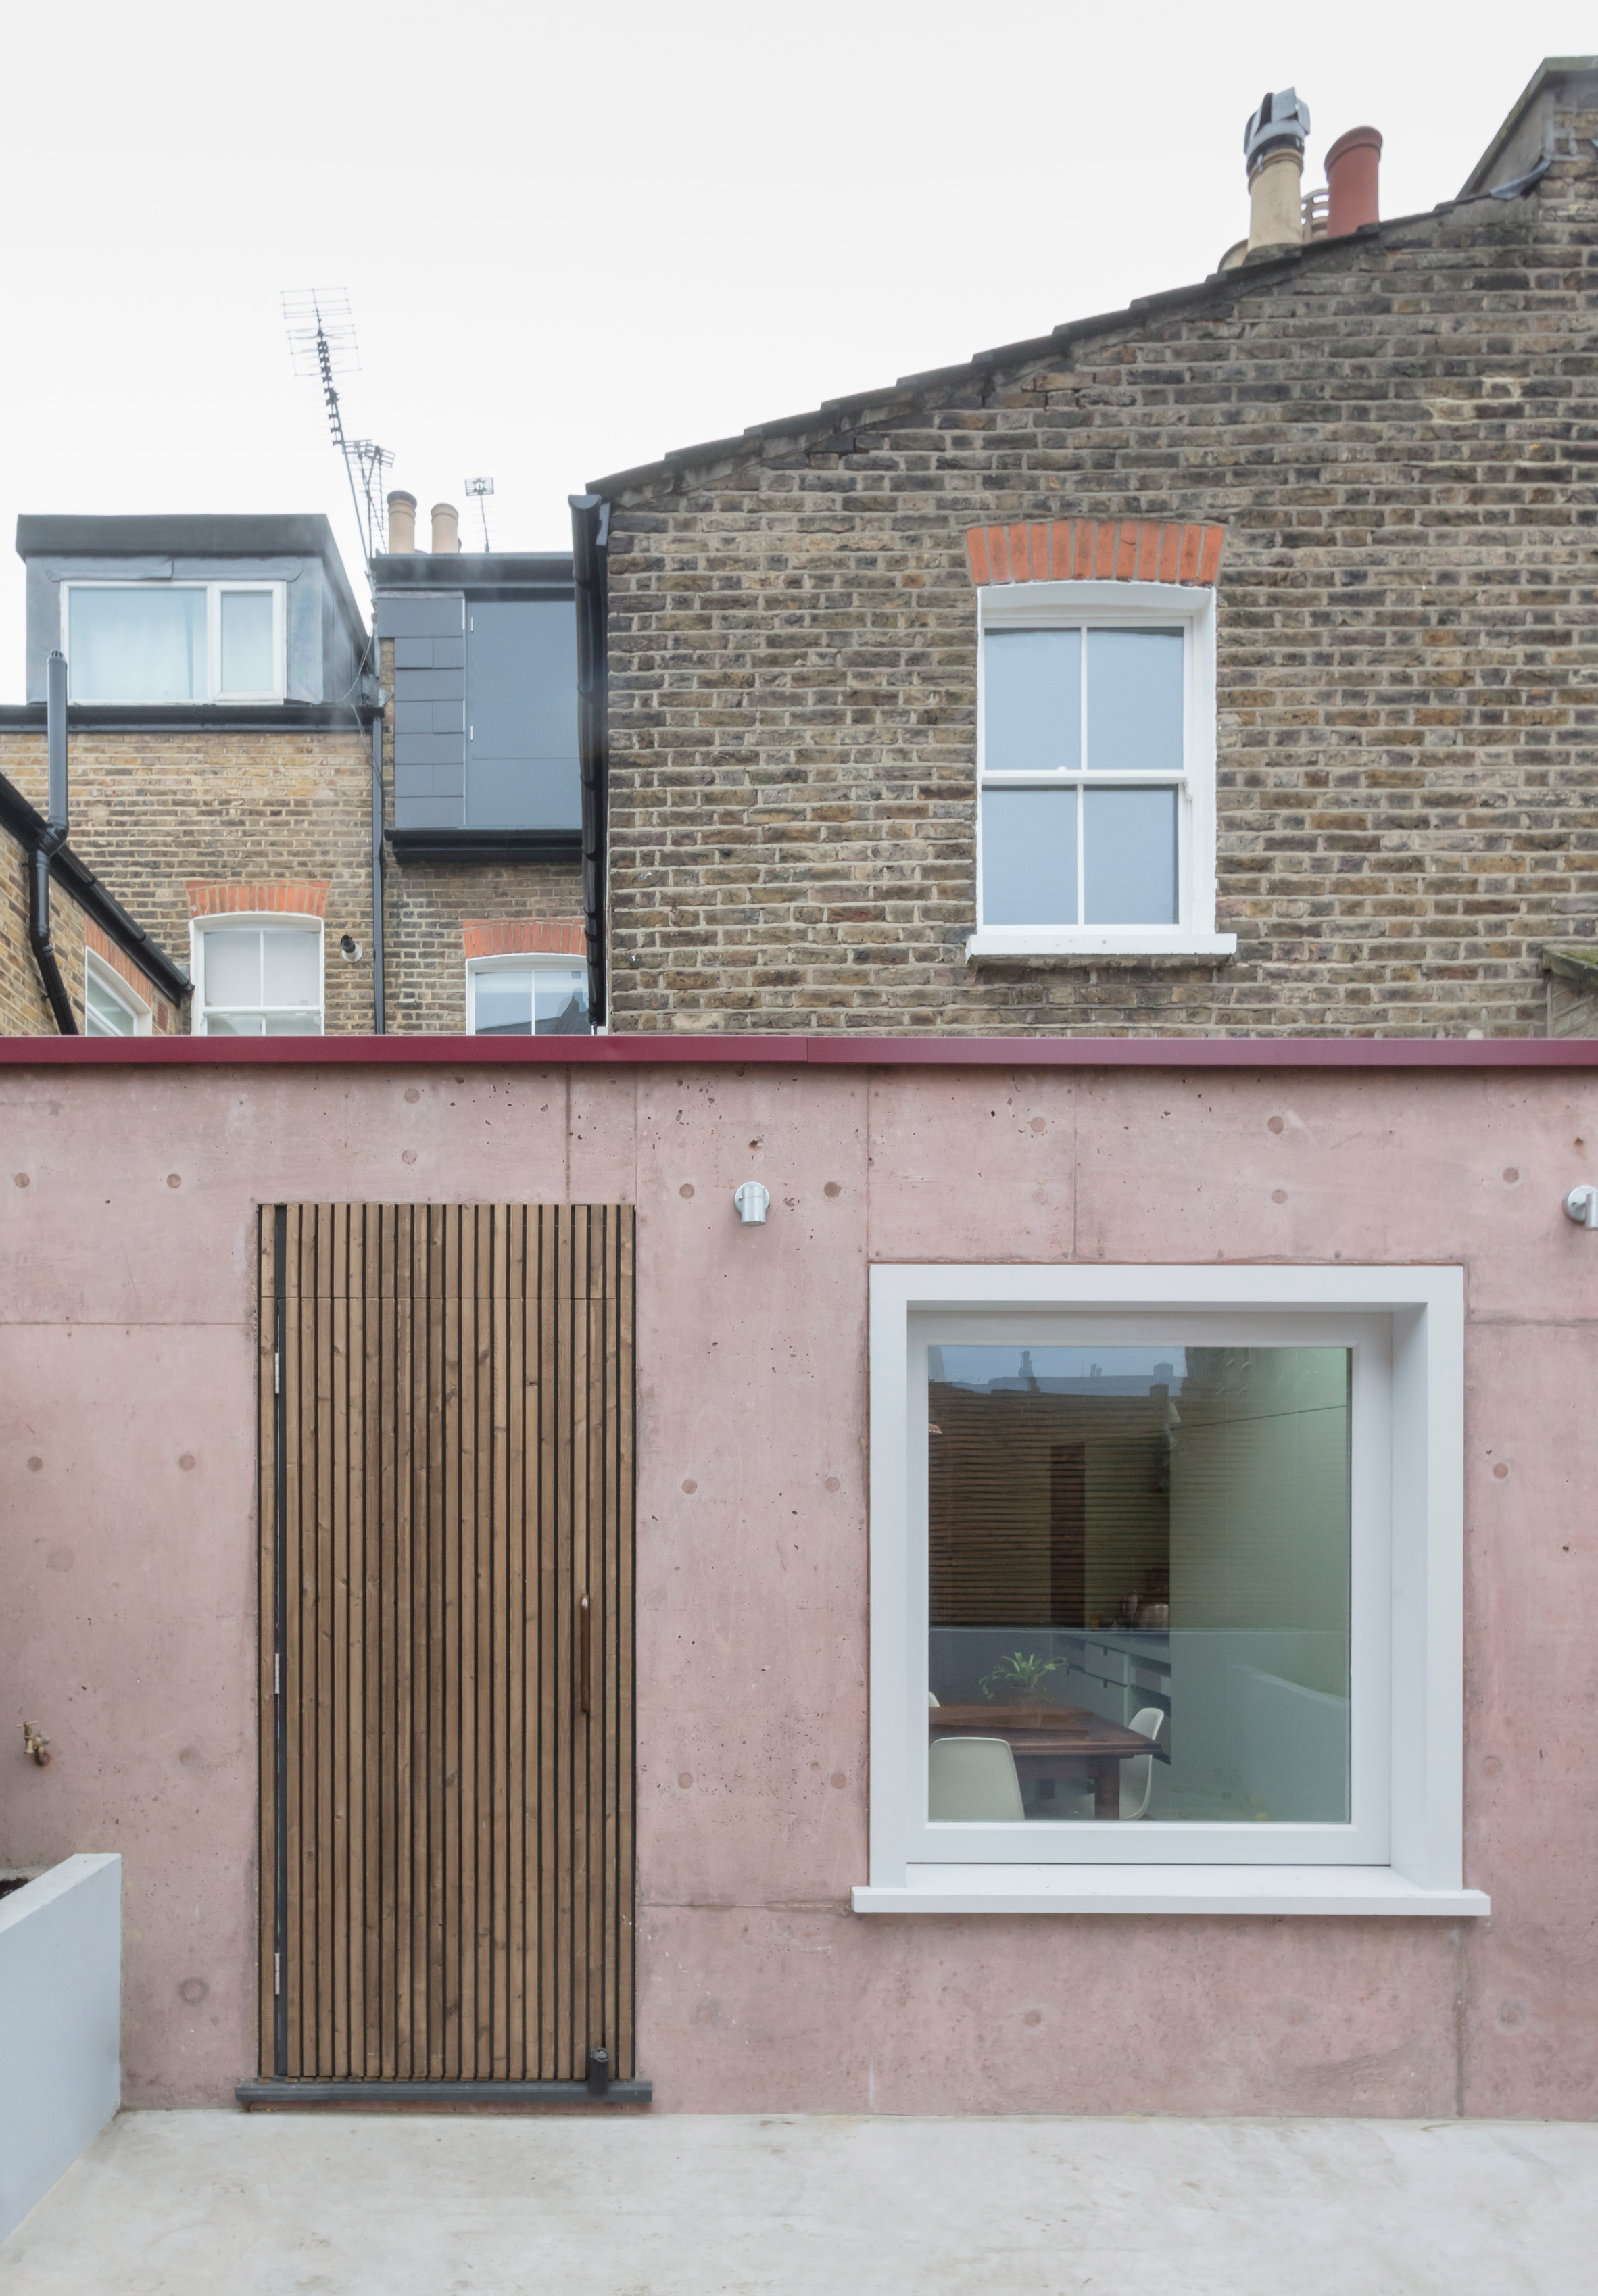 Pink Concrete Extension Adds Warmth And Texture To Brick